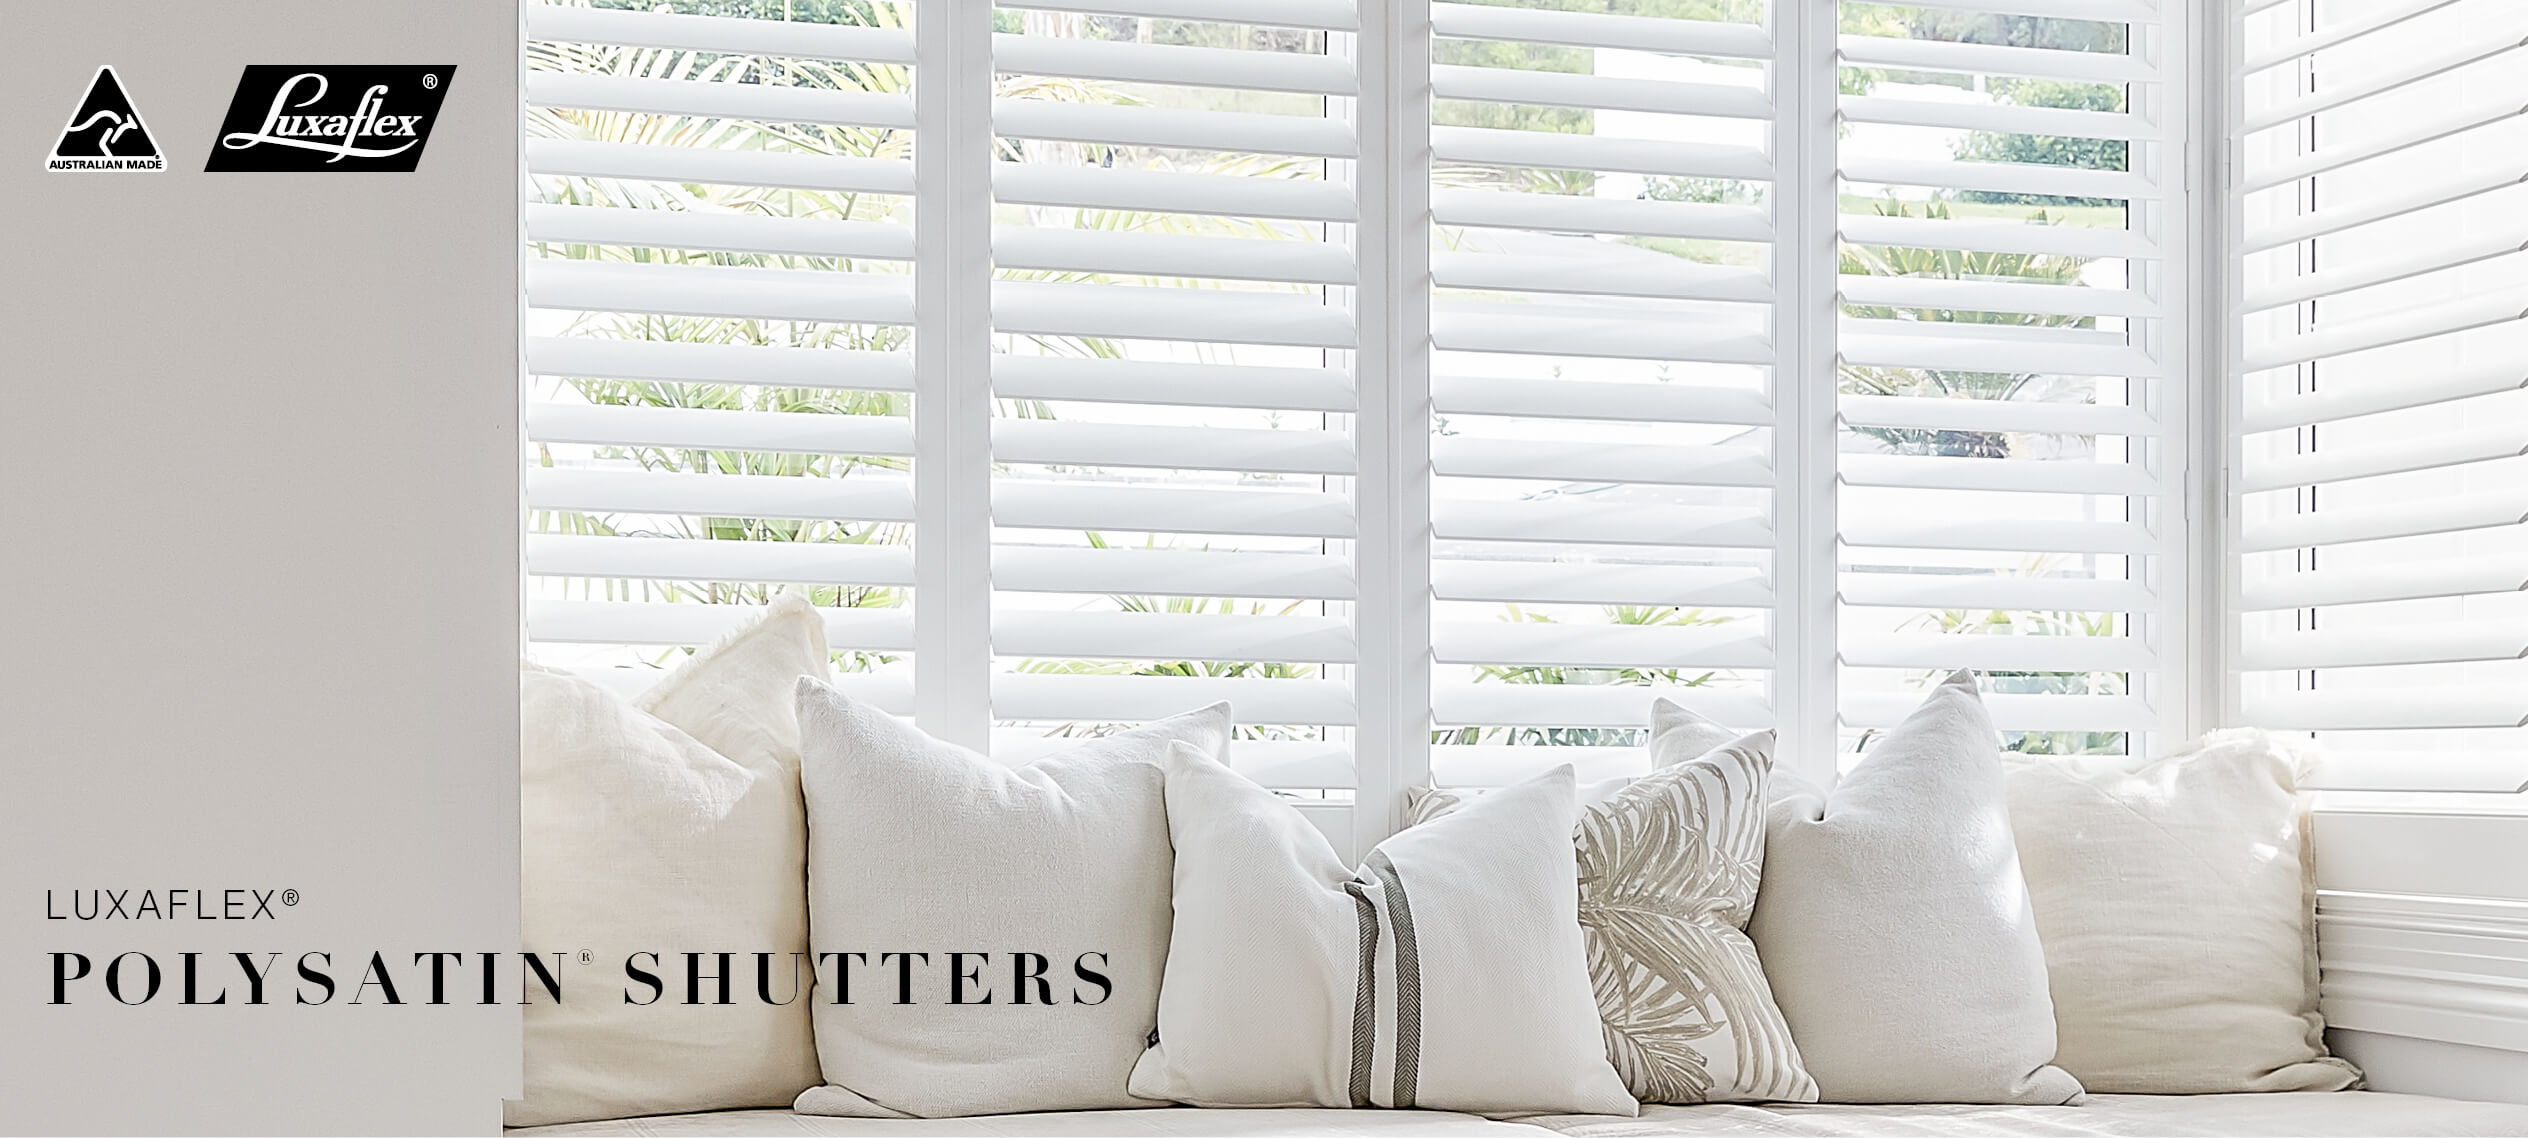 Summer Awnings Campaign Page Banner